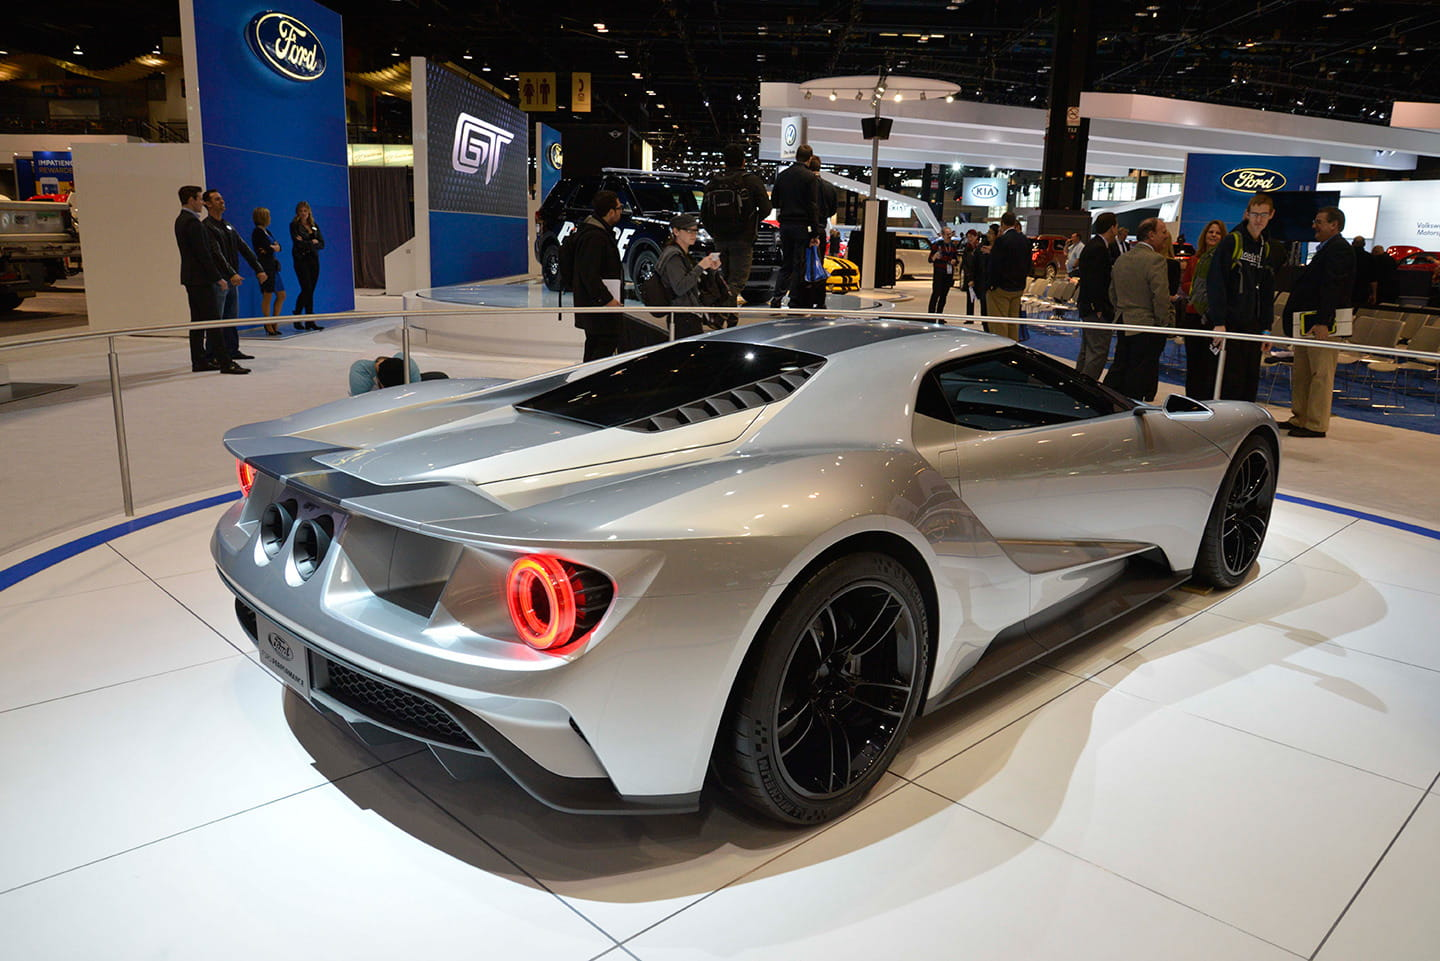 2016 - [Ford] GT  - Page 2 Ford-gt-2016-gris-directo-chicago-04-1440px